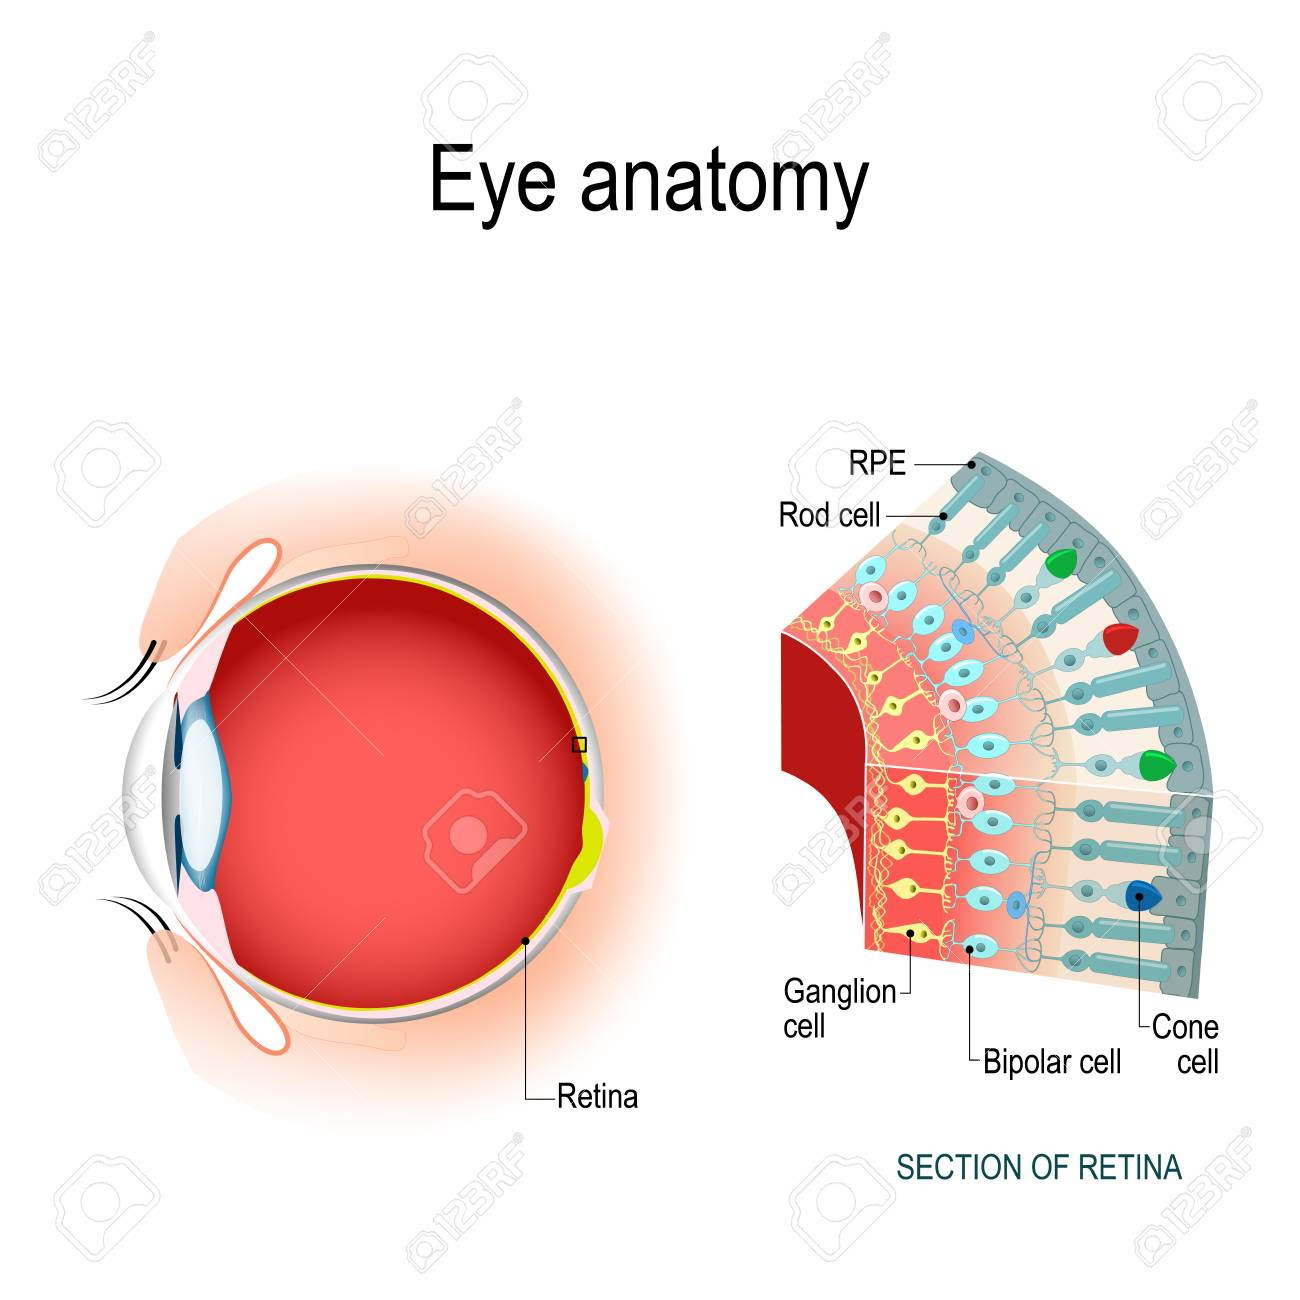 eye anatomy  rod cells and cone cells  the arrangement of retinal cells is  shown